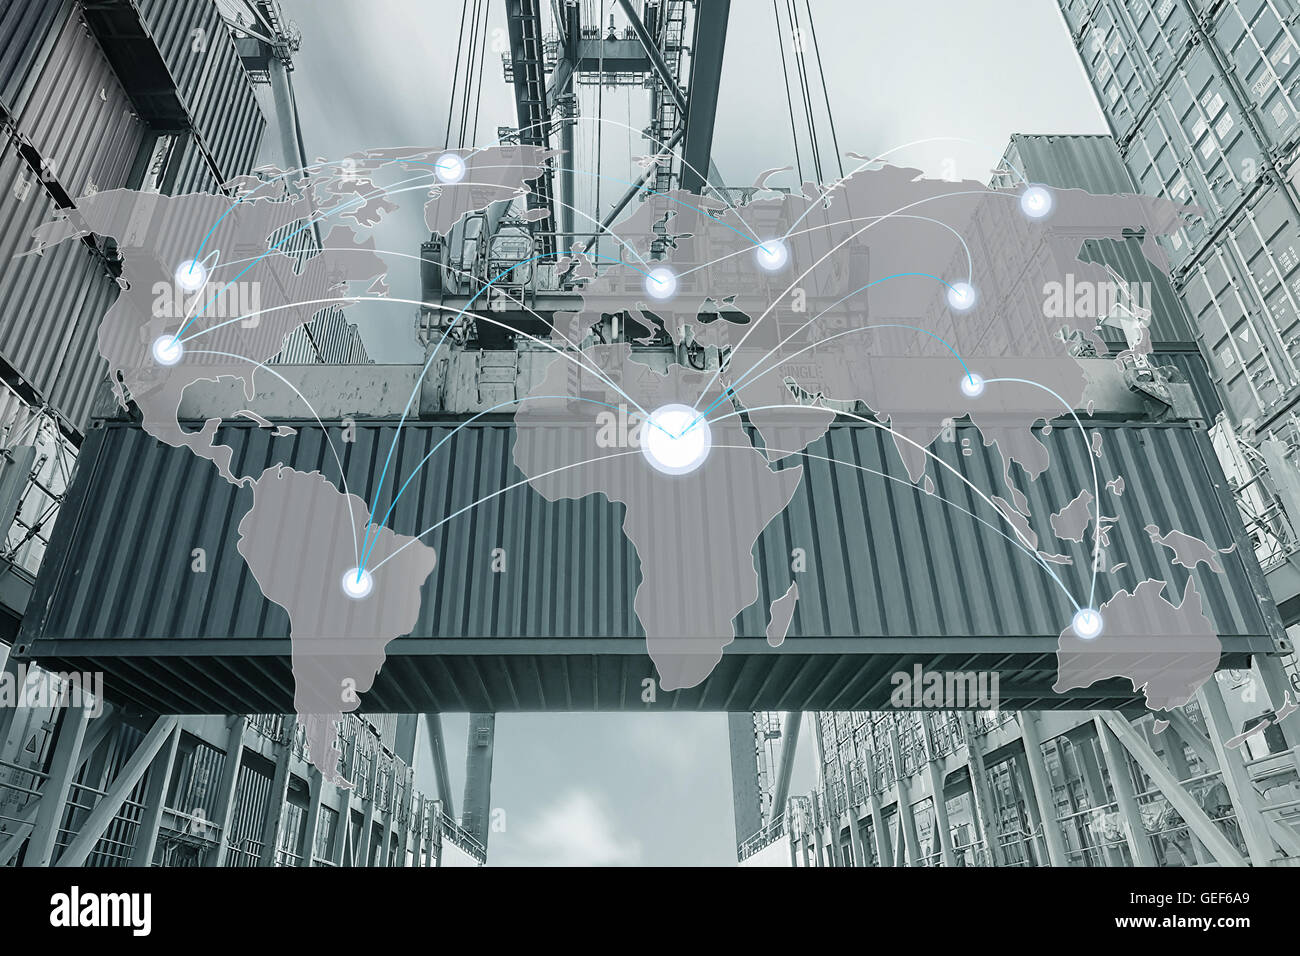 Import, Export, Logistics concept - Map global partner connection of Container Cargo freight ship - Stock Image